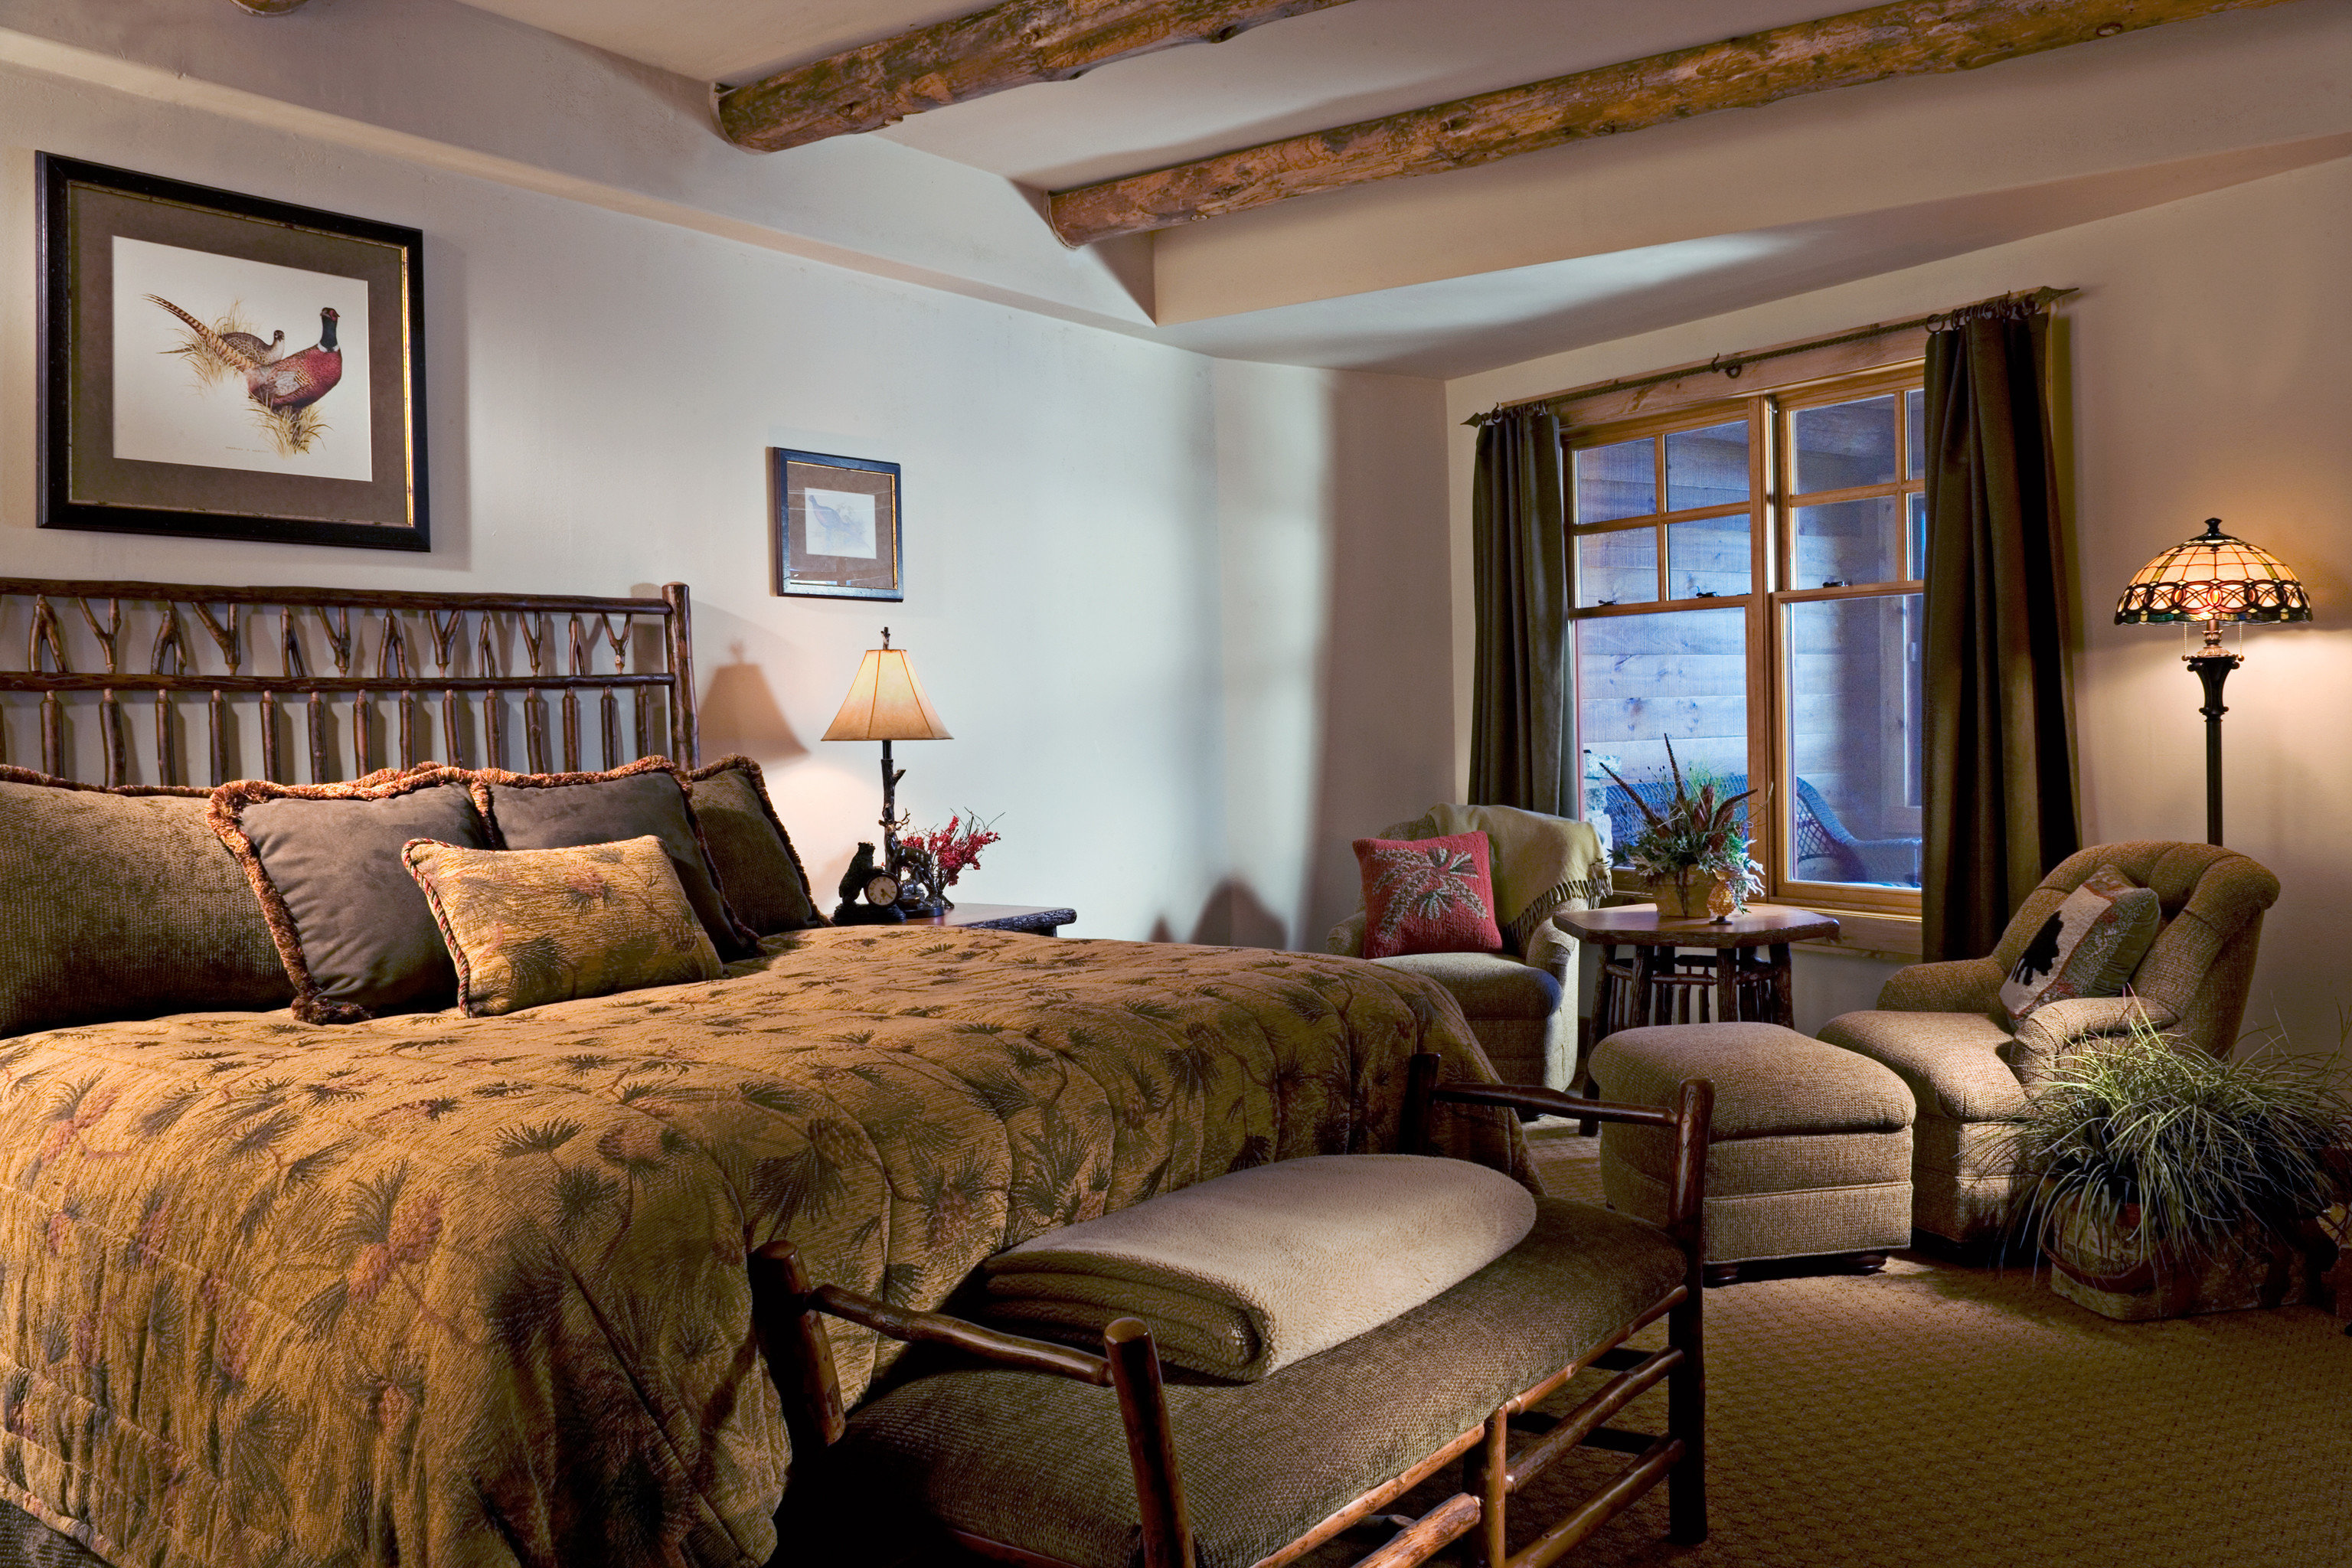 Bedroom Country Hotels Luxury New York Romantic Romantic Hotels Rustic Suite sofa property living room home cottage hardwood farmhouse Villa